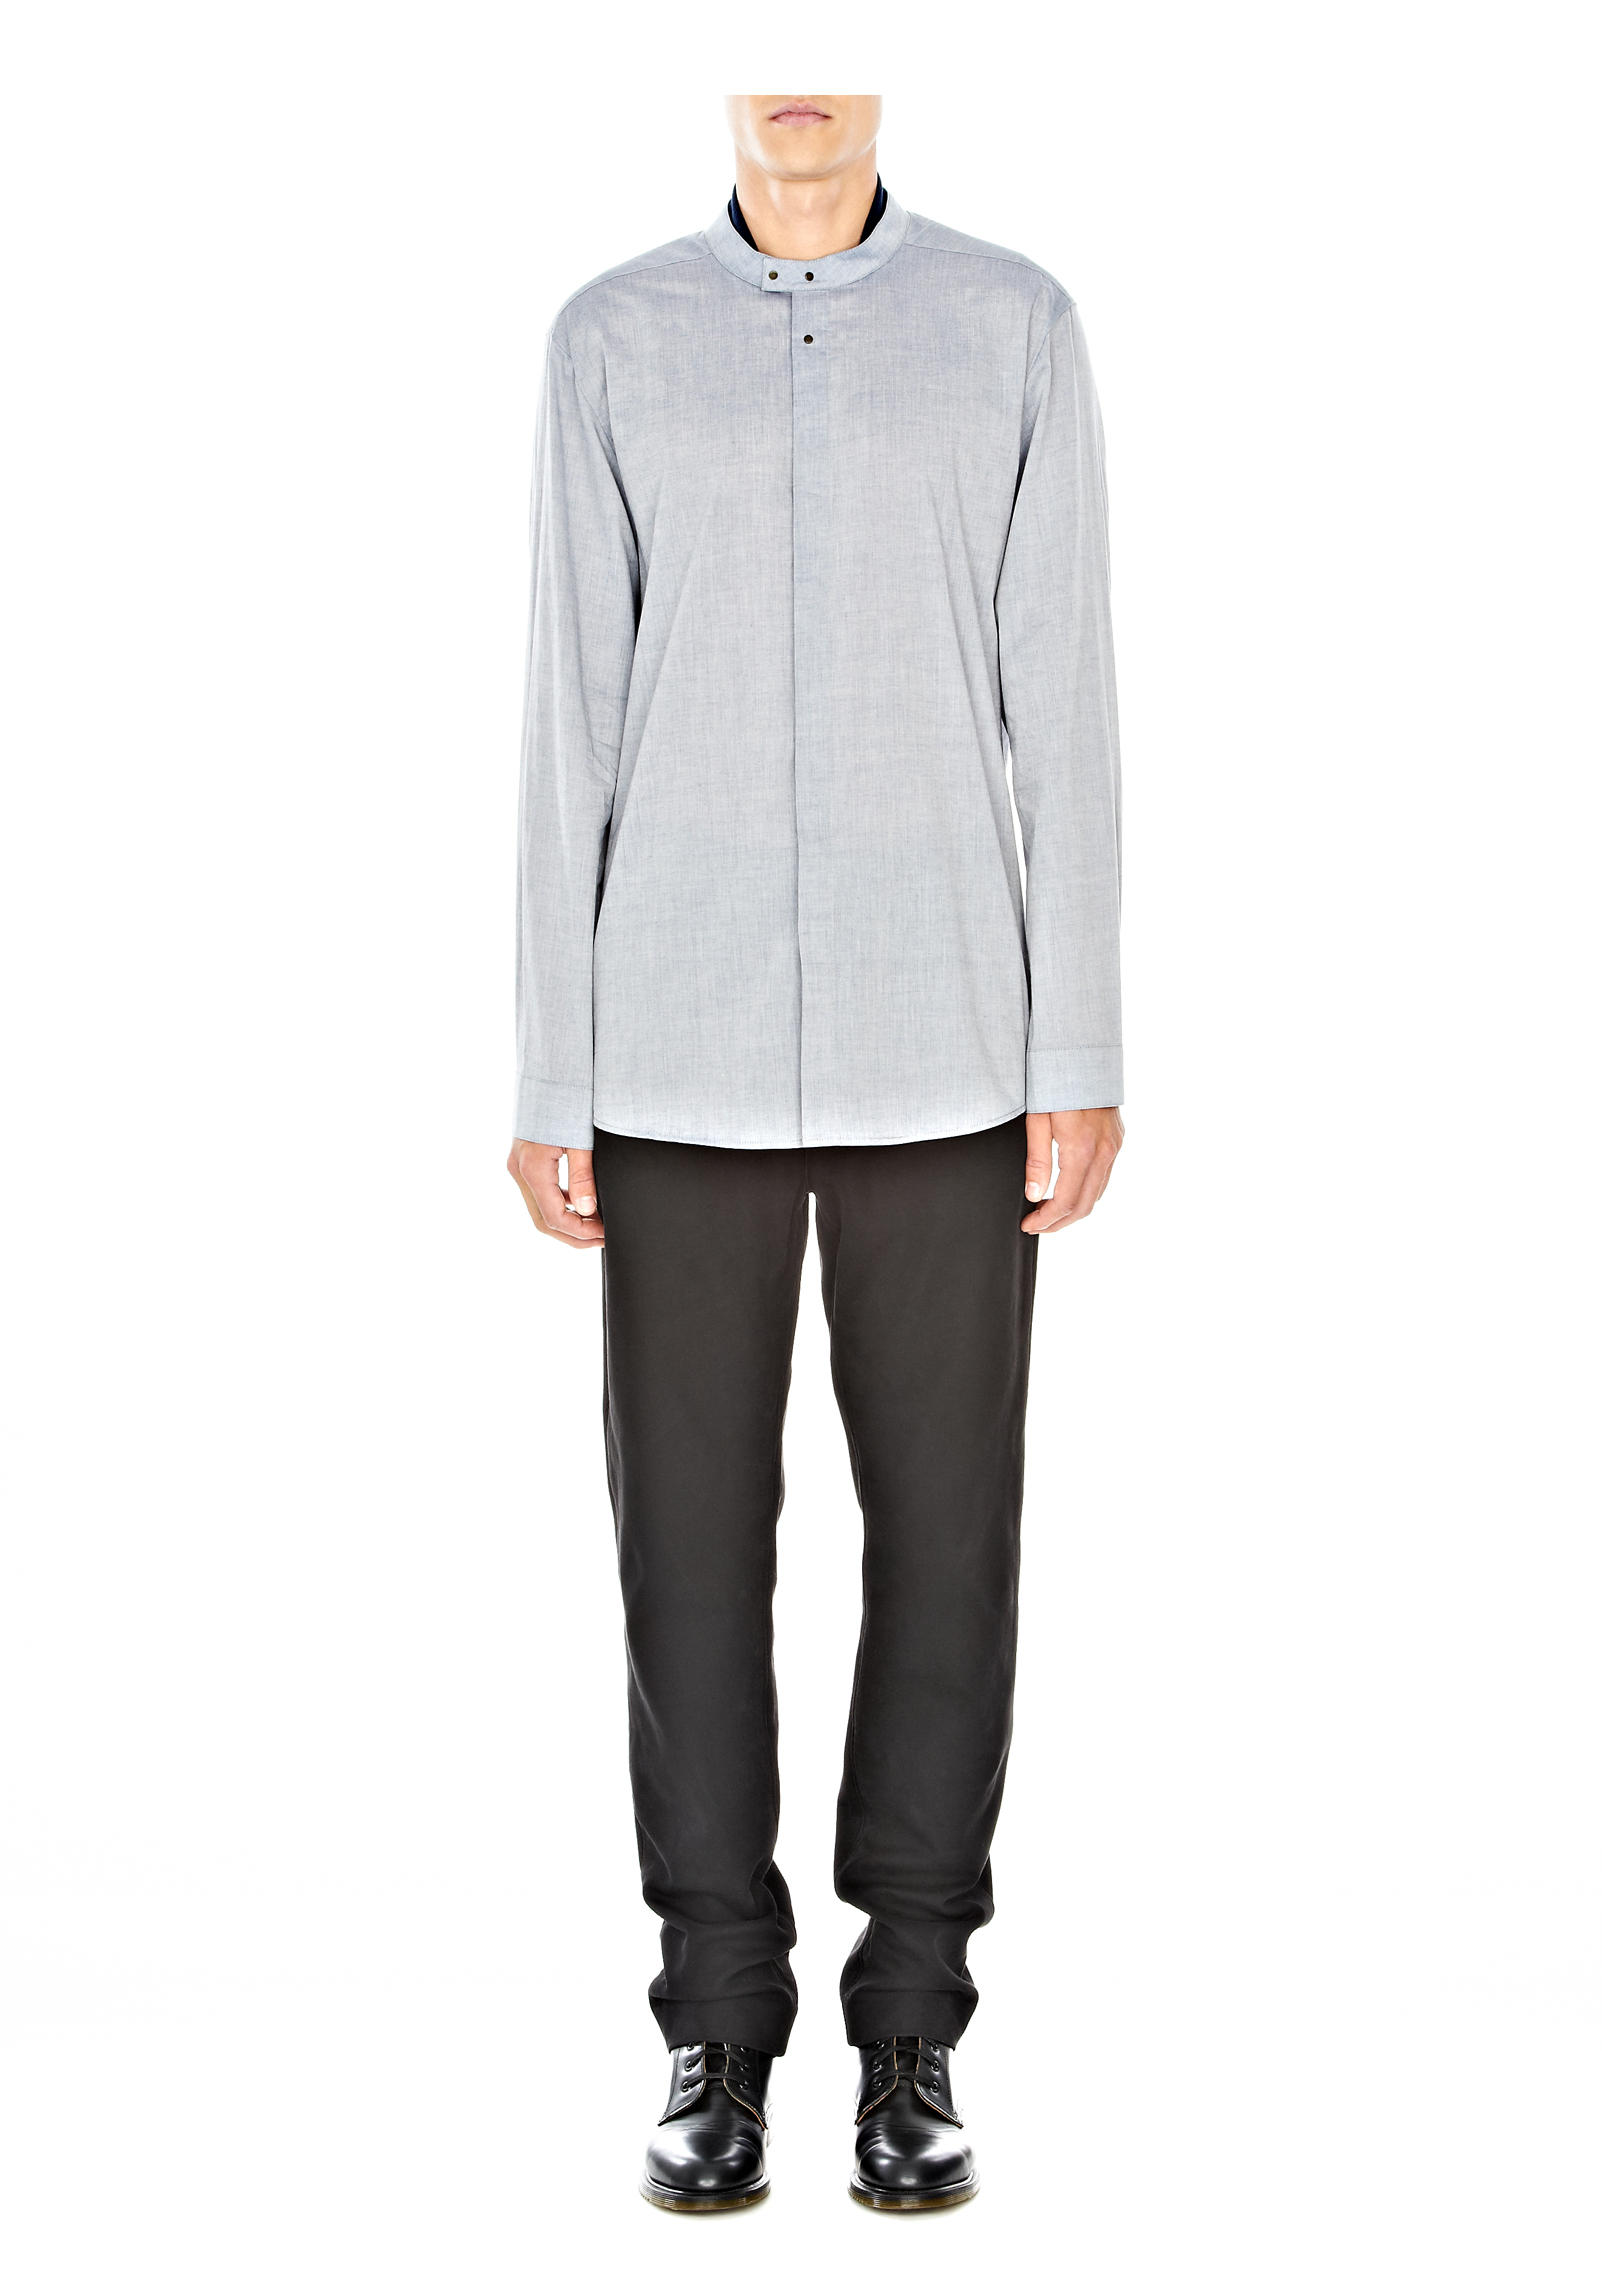 Alexander wang double collar shirt with snap closure in for Mens shirts with snaps instead of buttons